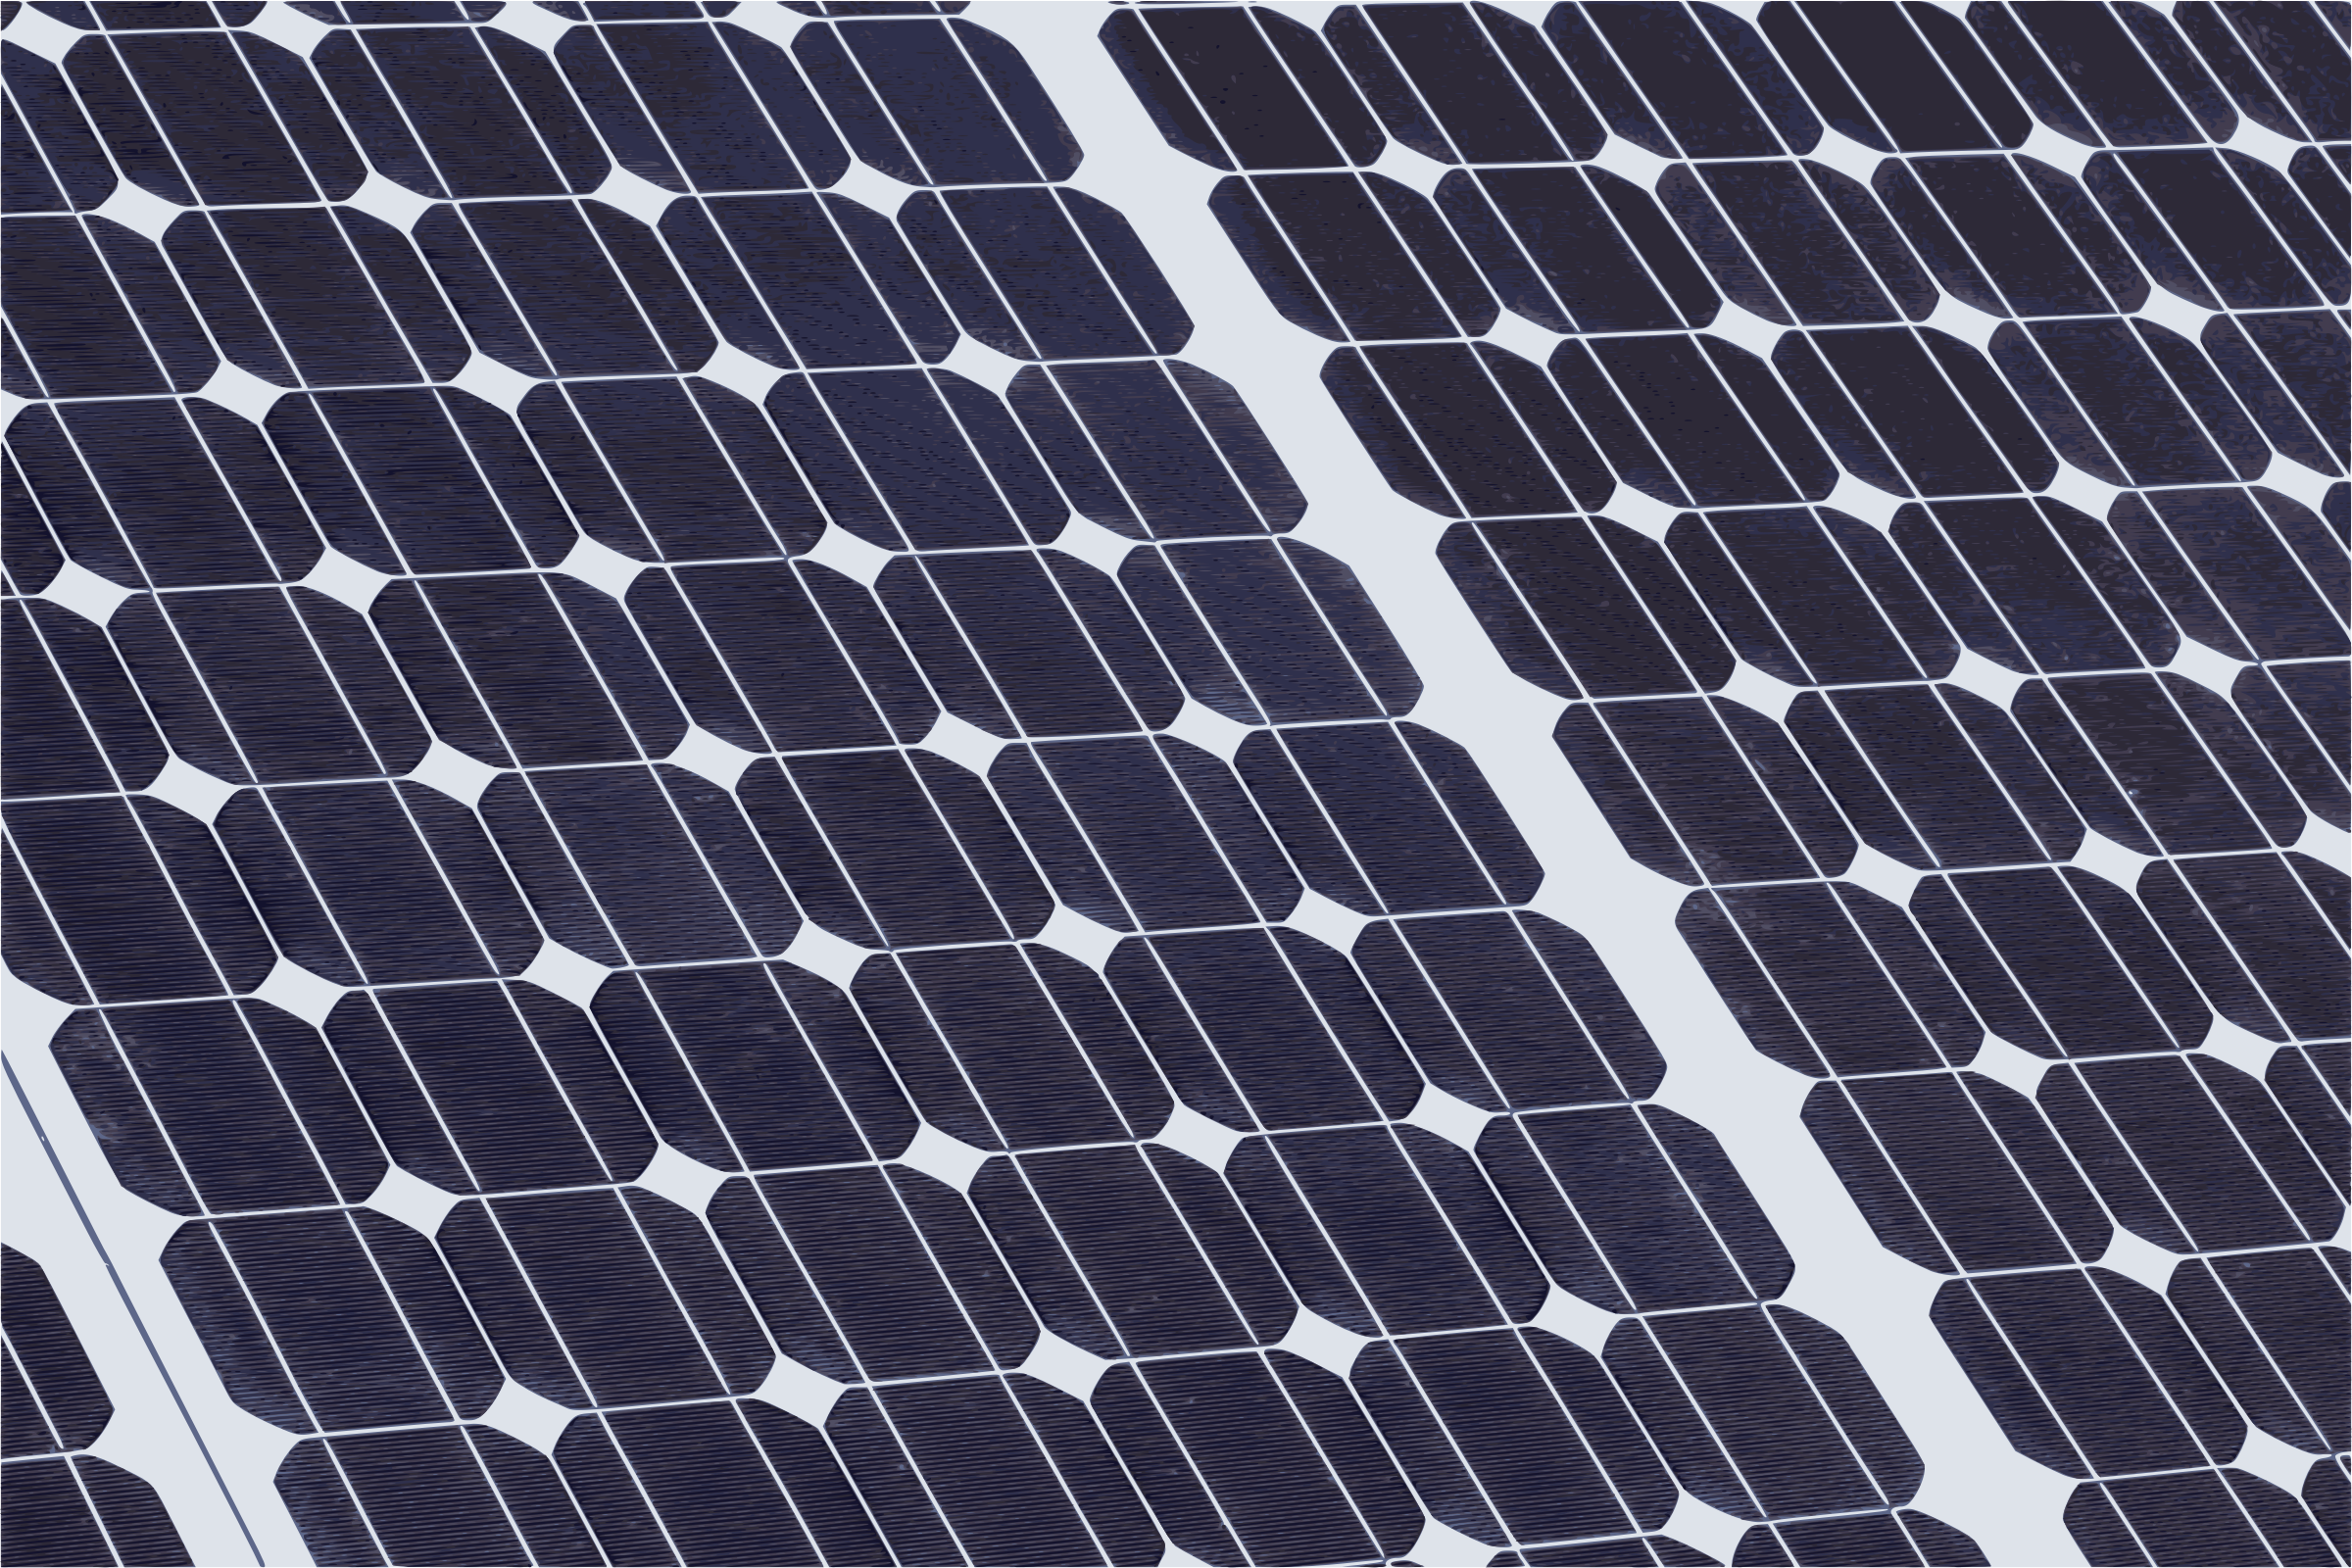 Solar Panel Closeup by j4p4n